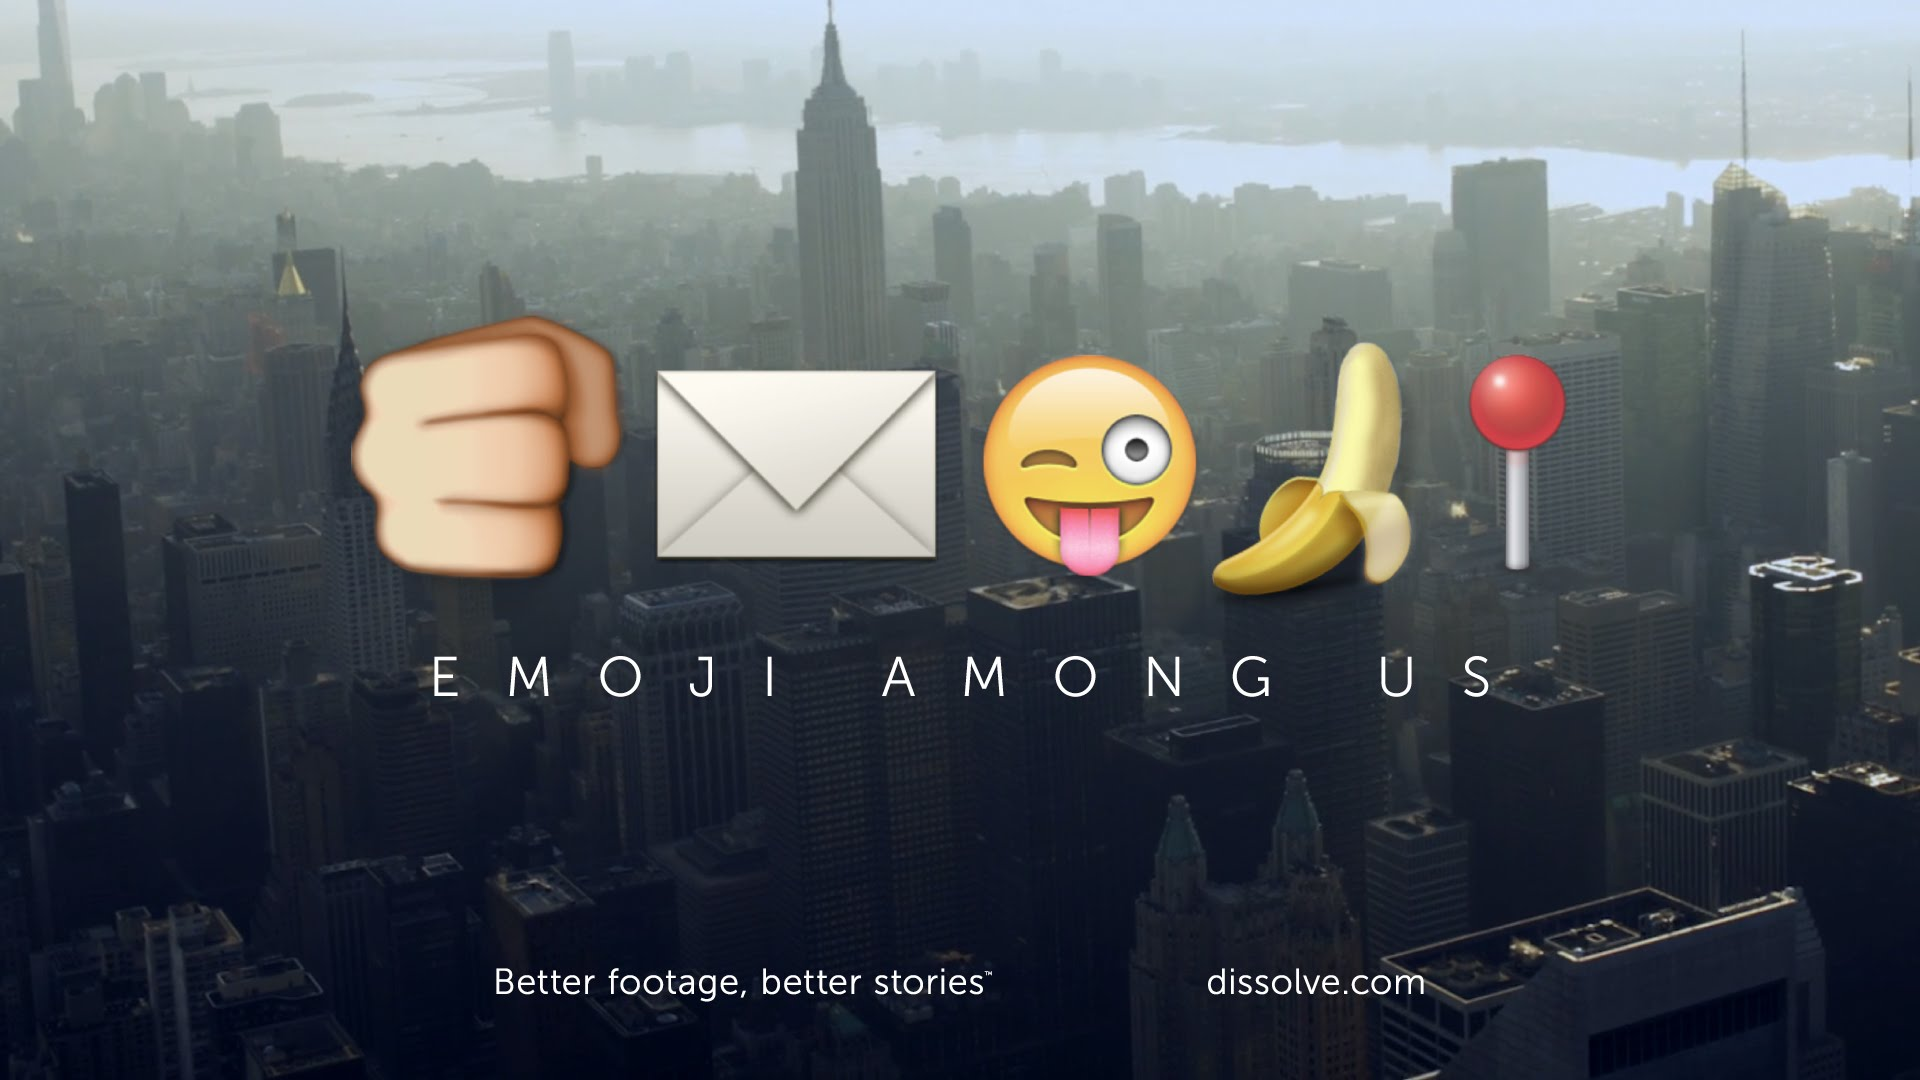 'Emoji Among Us', A Nature Documentary Parody Exploring the Role of Emoji in the World